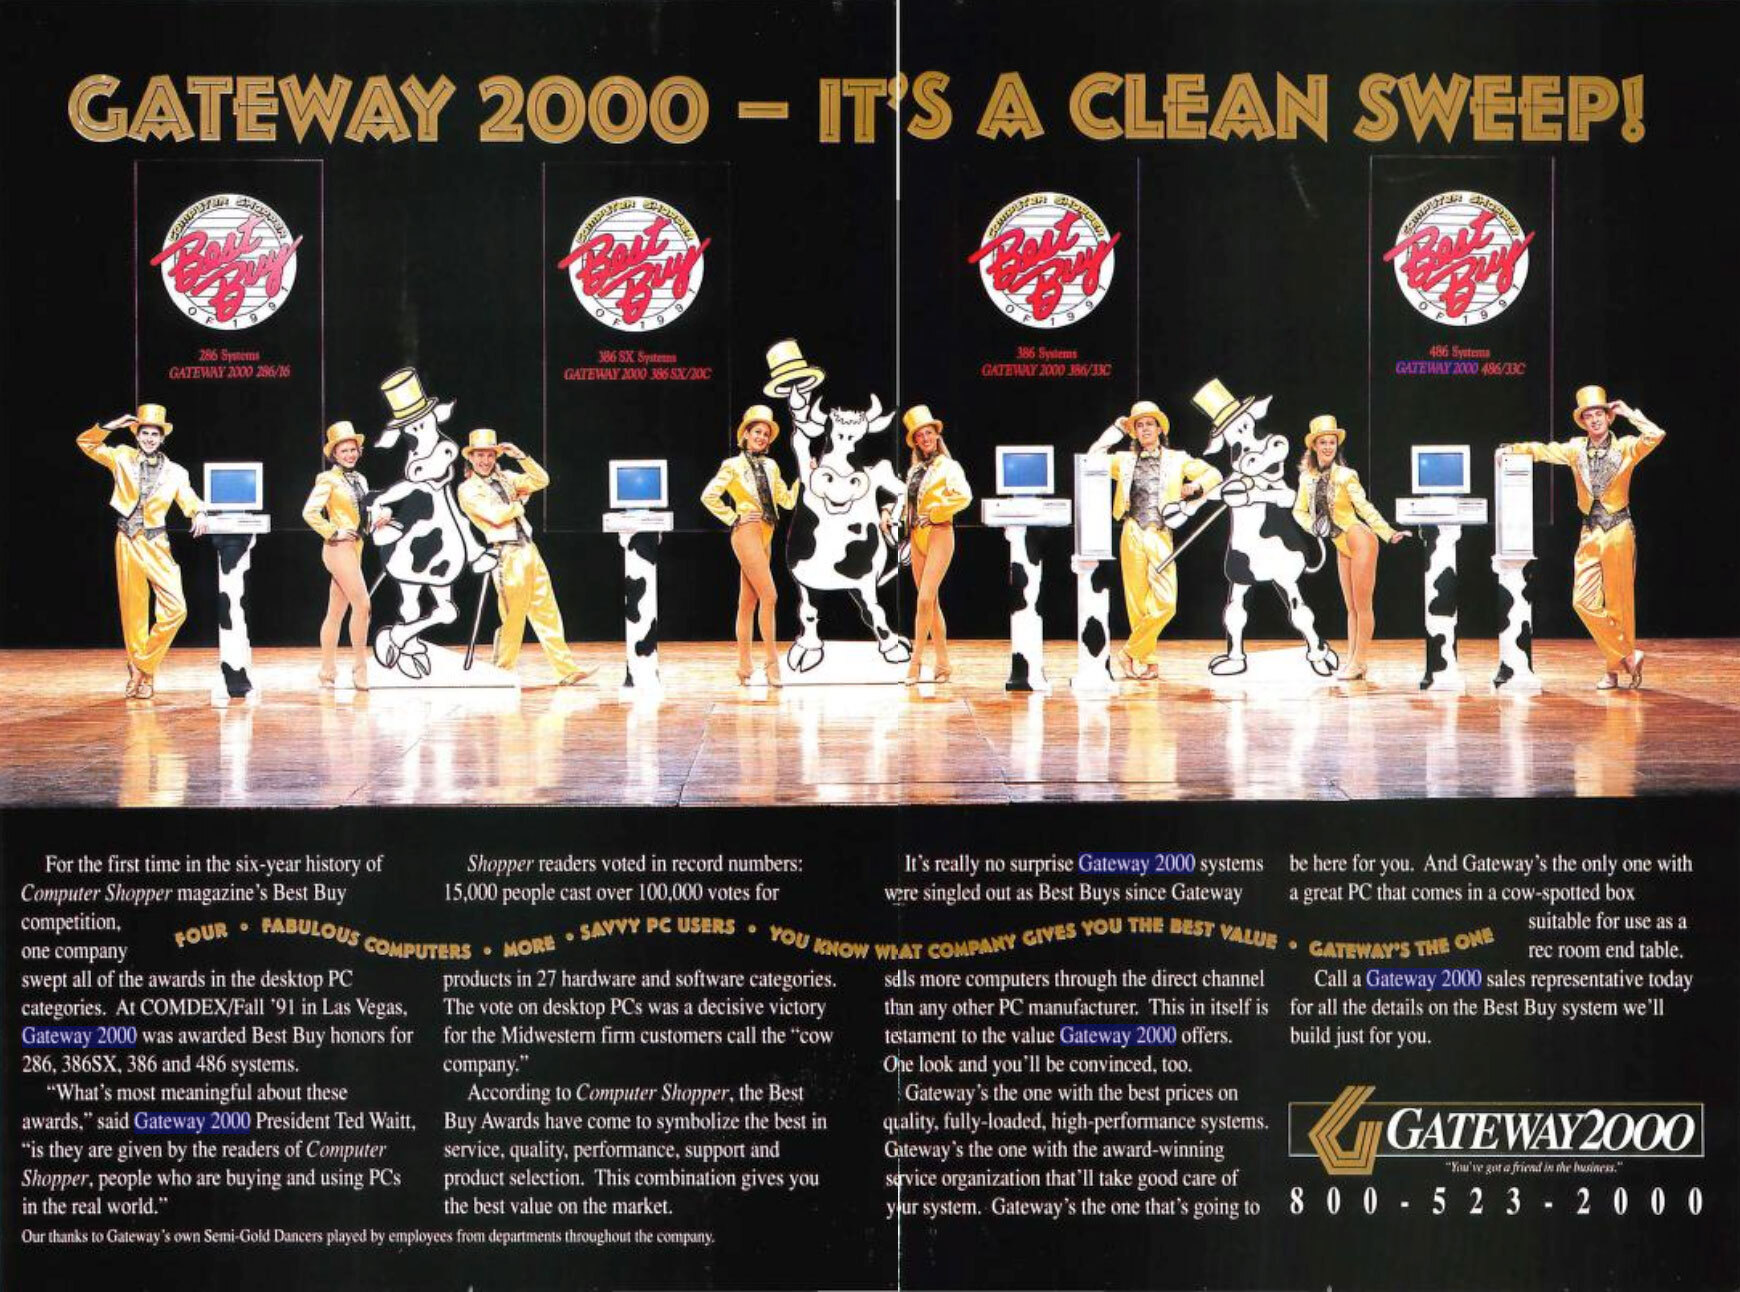 0725 cleansweep